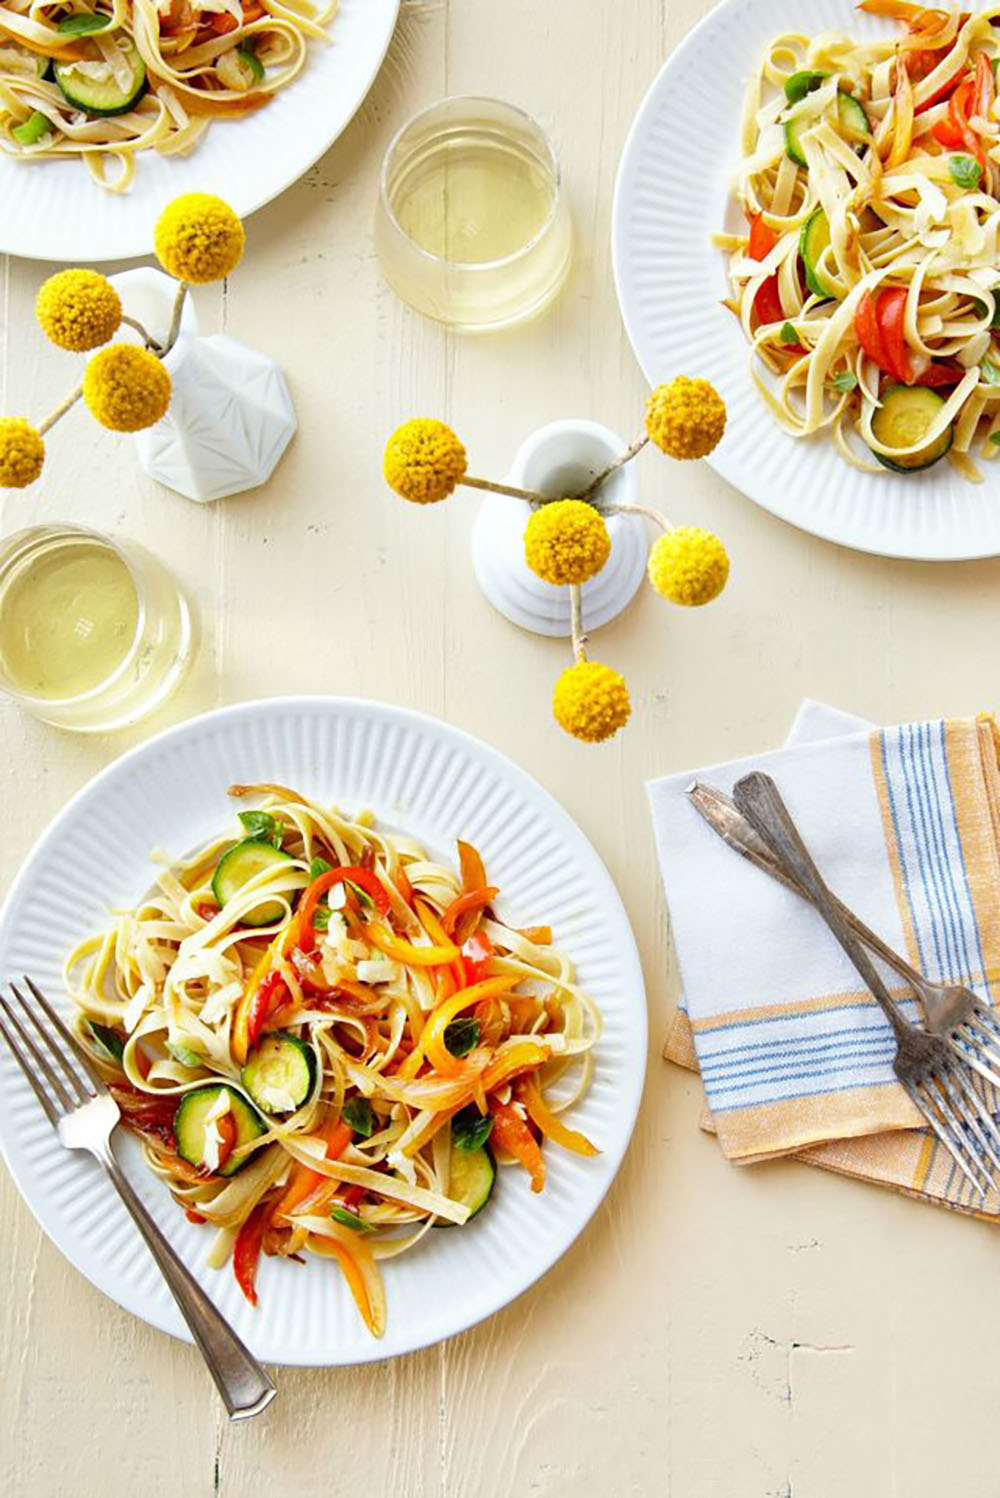 Light Pasta Dinner Ideas